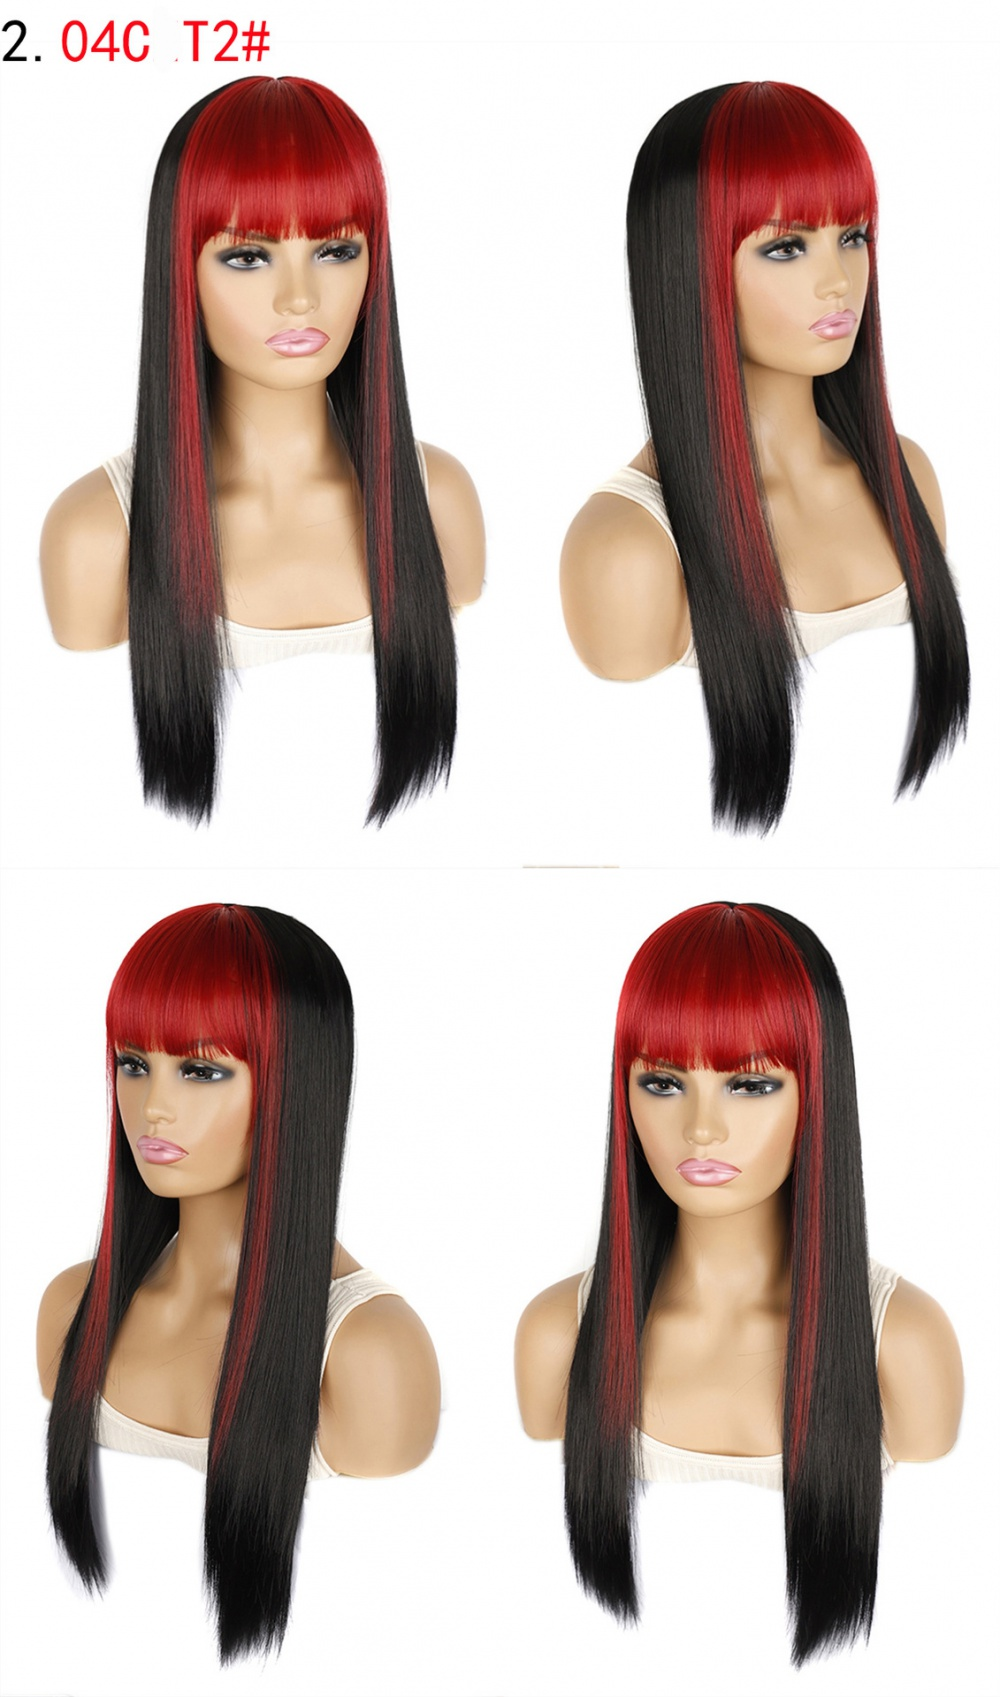 Long anime hip-hop bangs prom bleaching colors wig